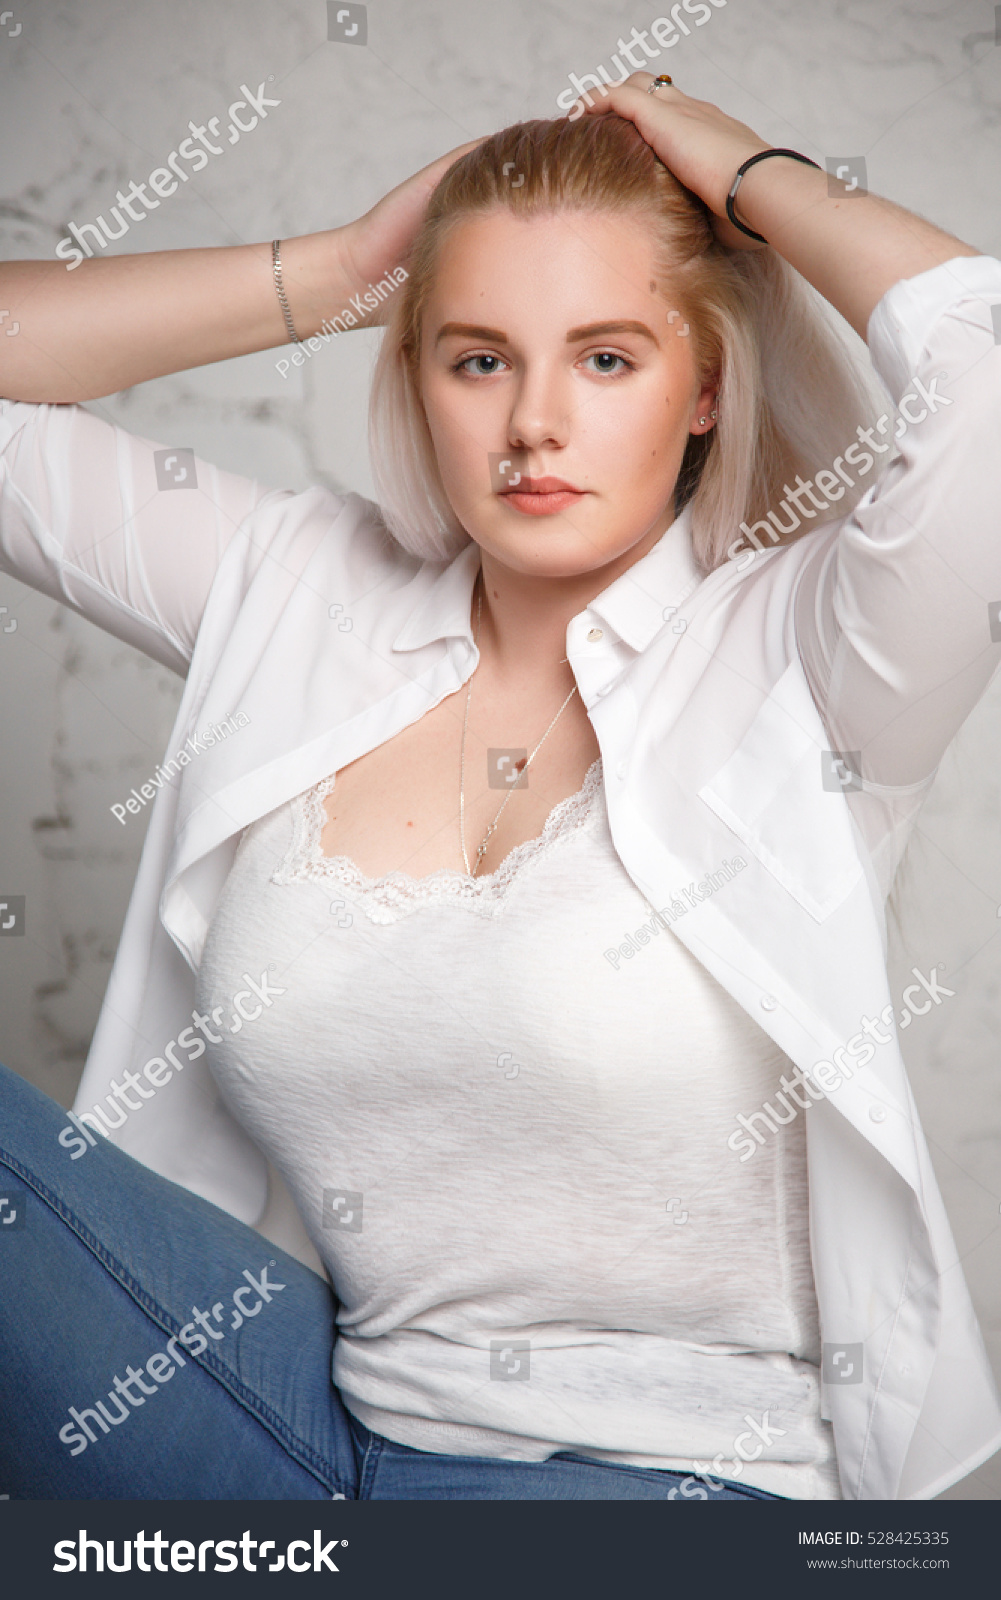 Big Blonde Woman